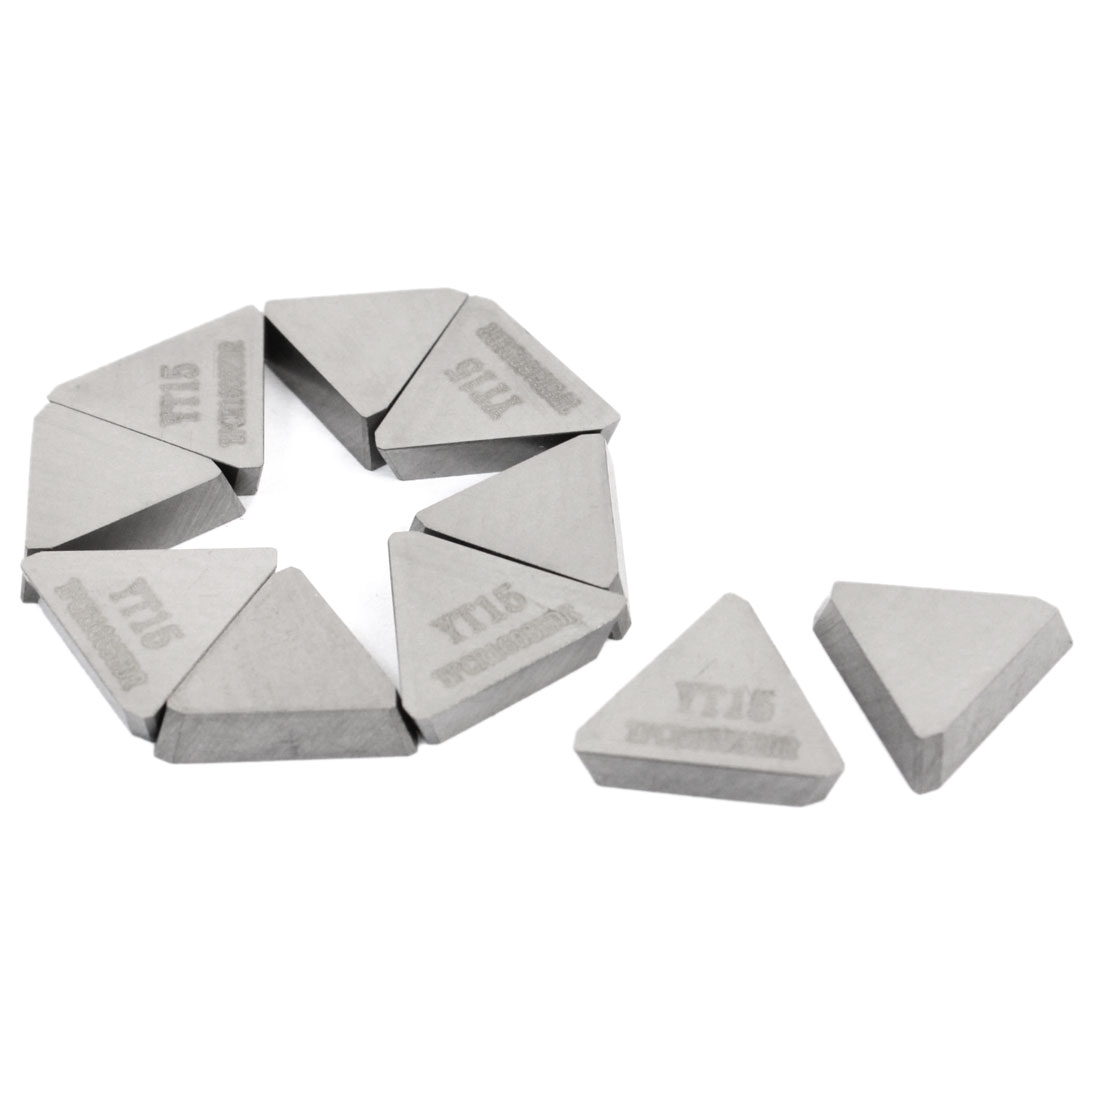 10 Pcs YT15 Triangle Hard Alloy Cemented Carbide Inserts Cutter Tip